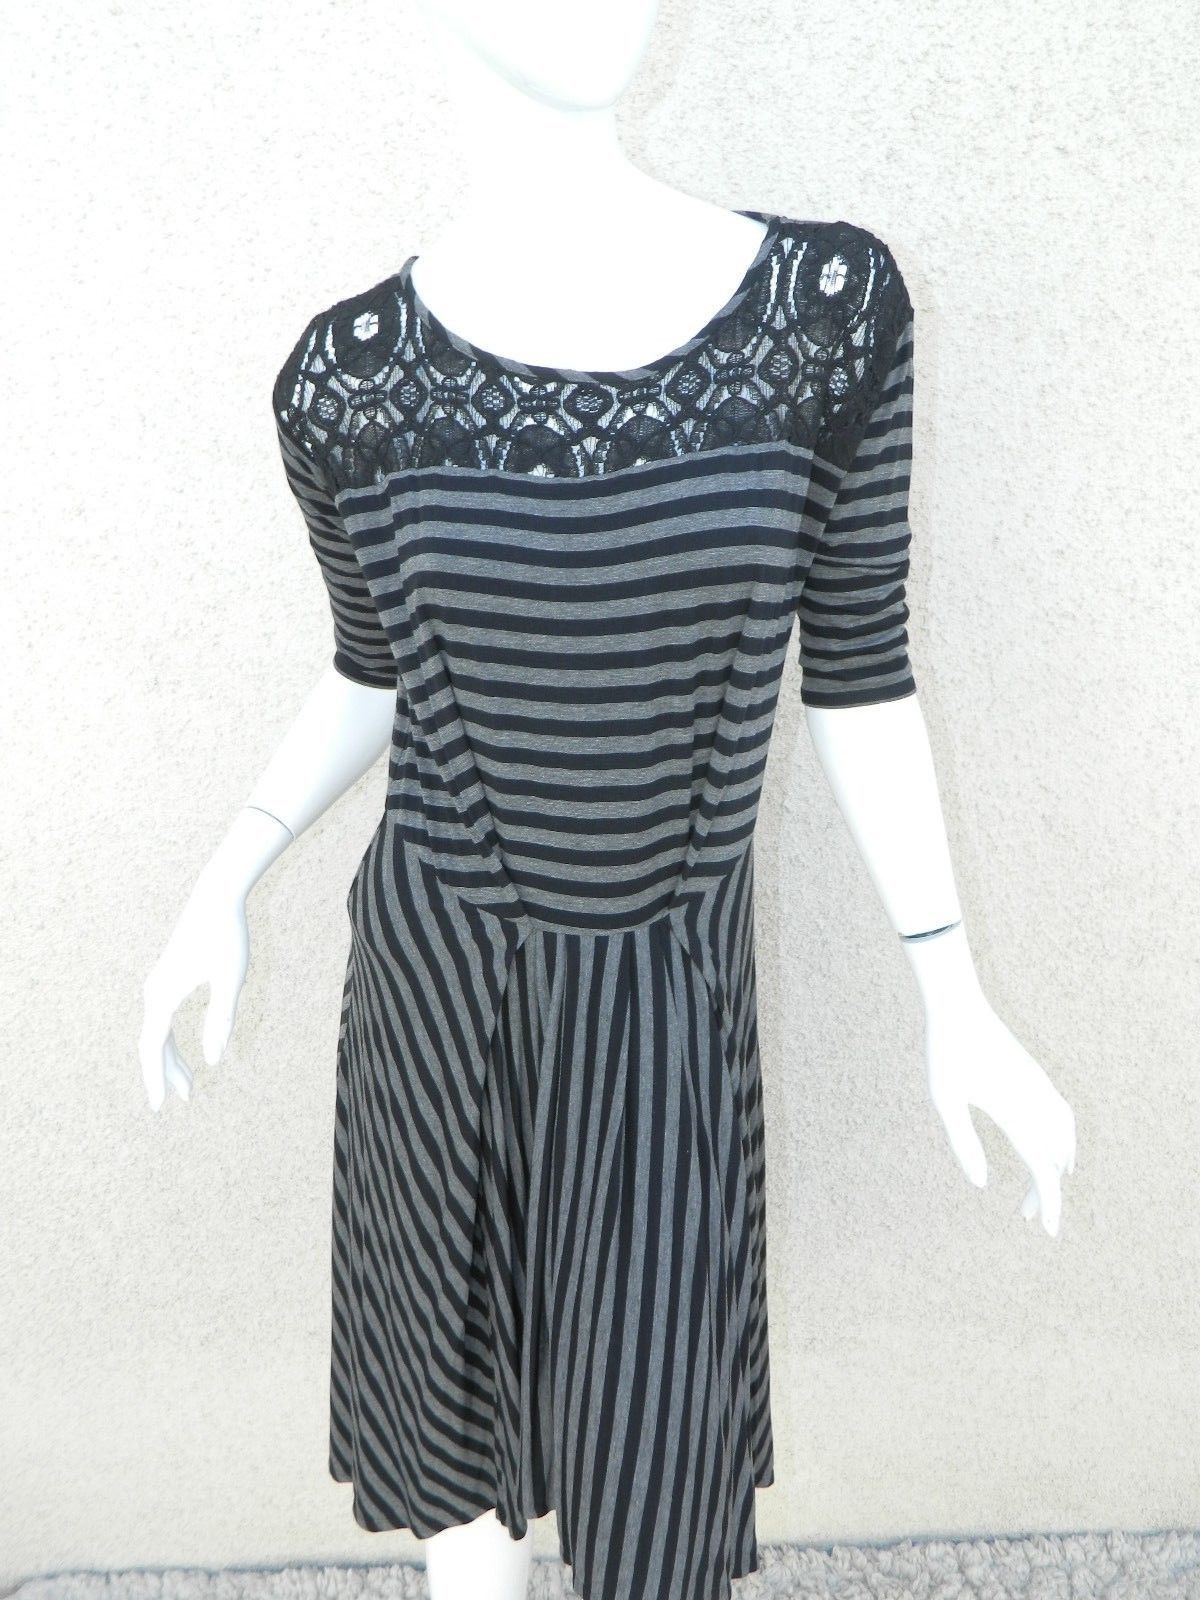 575fd3c38c67 Anthropologie Tiny Dress Black and Gray Stripes Black Lace Size XSP